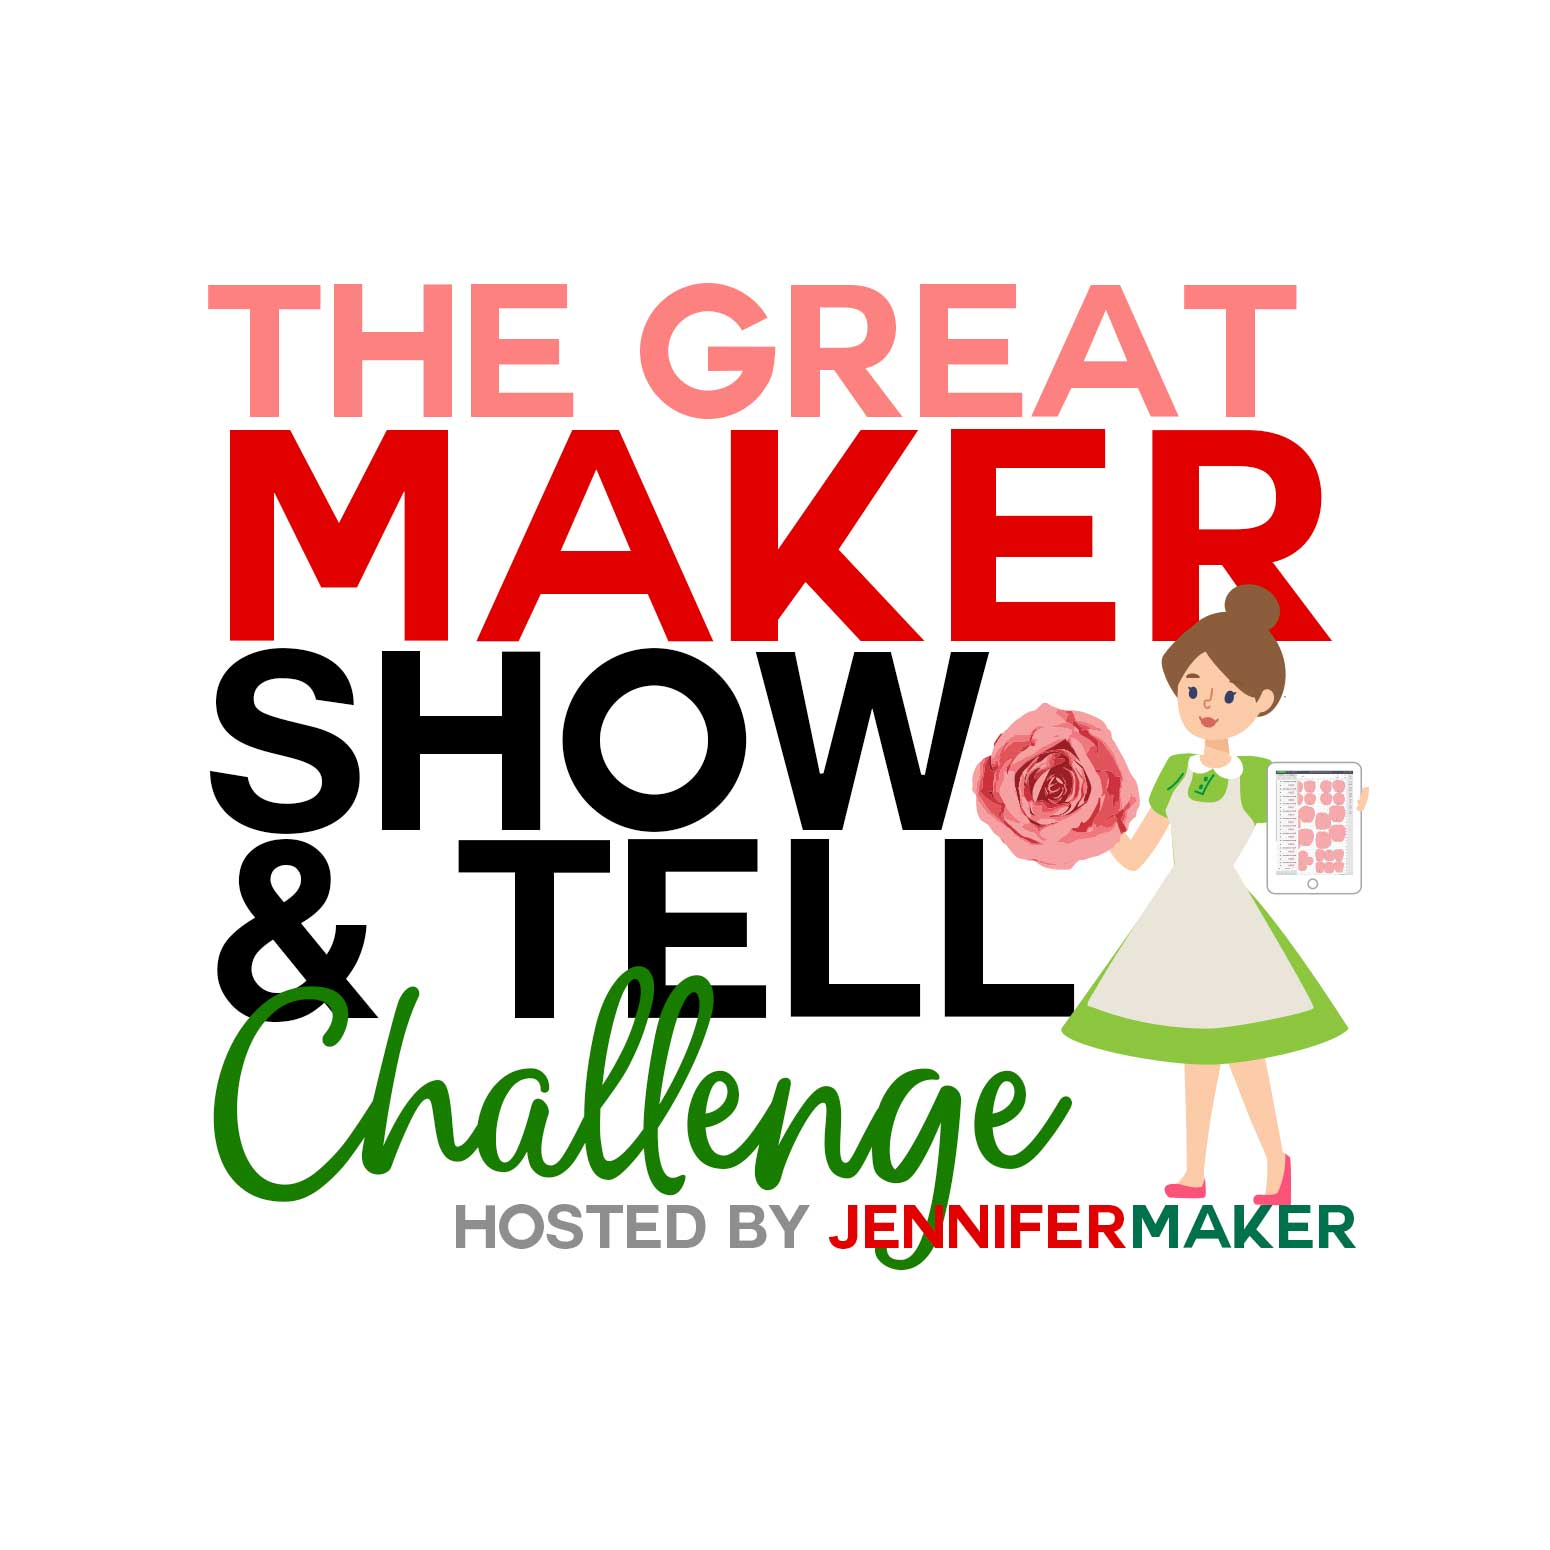 The Great Maker Show & Tell Challenge: Win a Cricut Maker & More